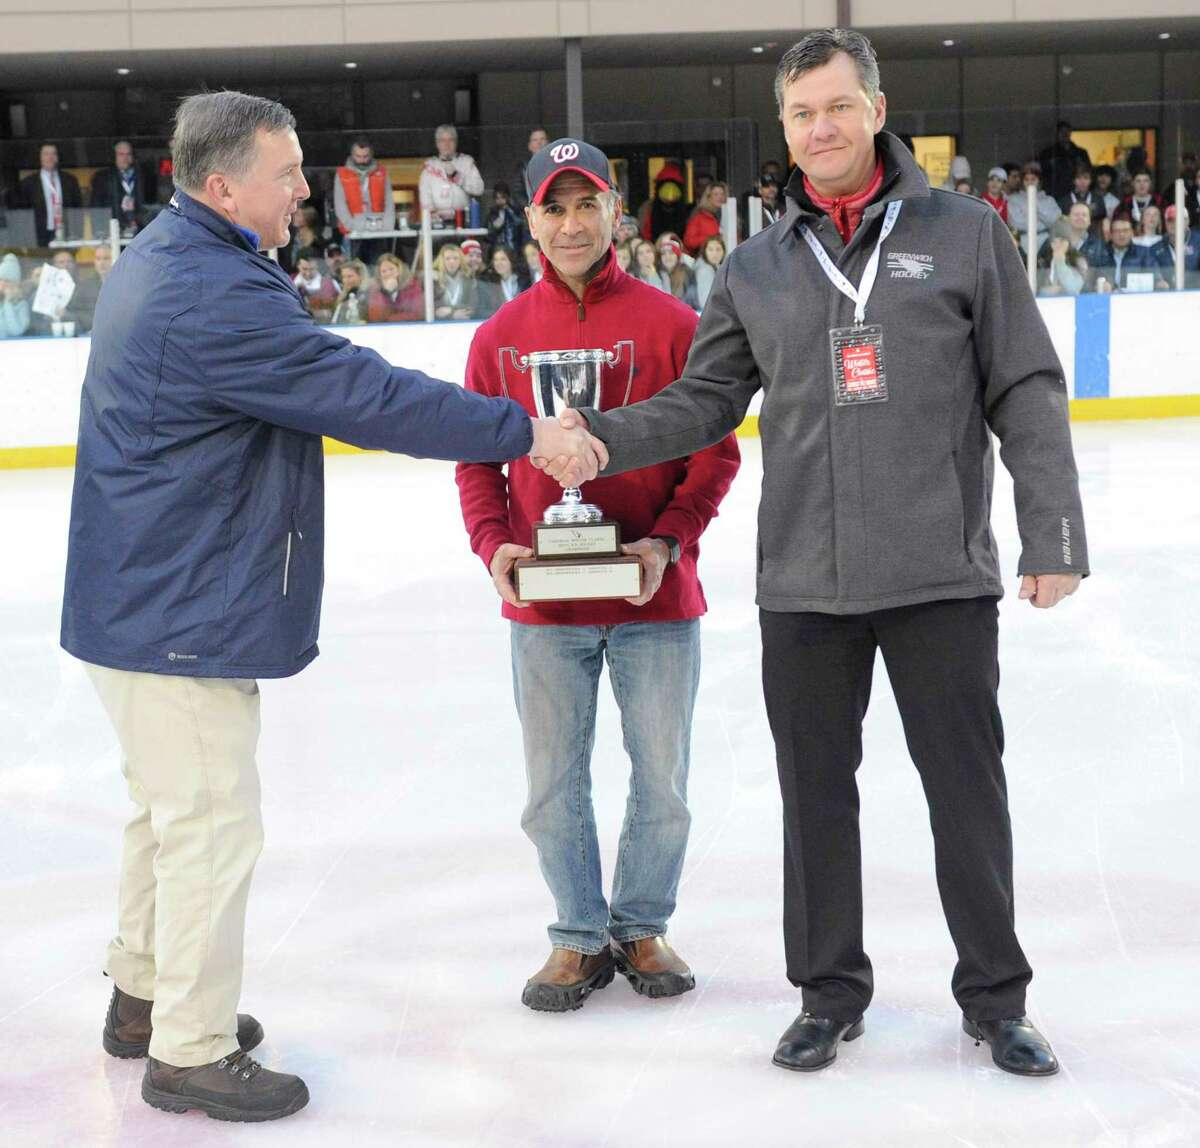 At right, Greenwich coach Chris Rurak shakes hands with Darien coach Mac Budd prior to the tip off of the 3rd Ice Hockey Winter Classic at the Greenwich Skating Club in December.